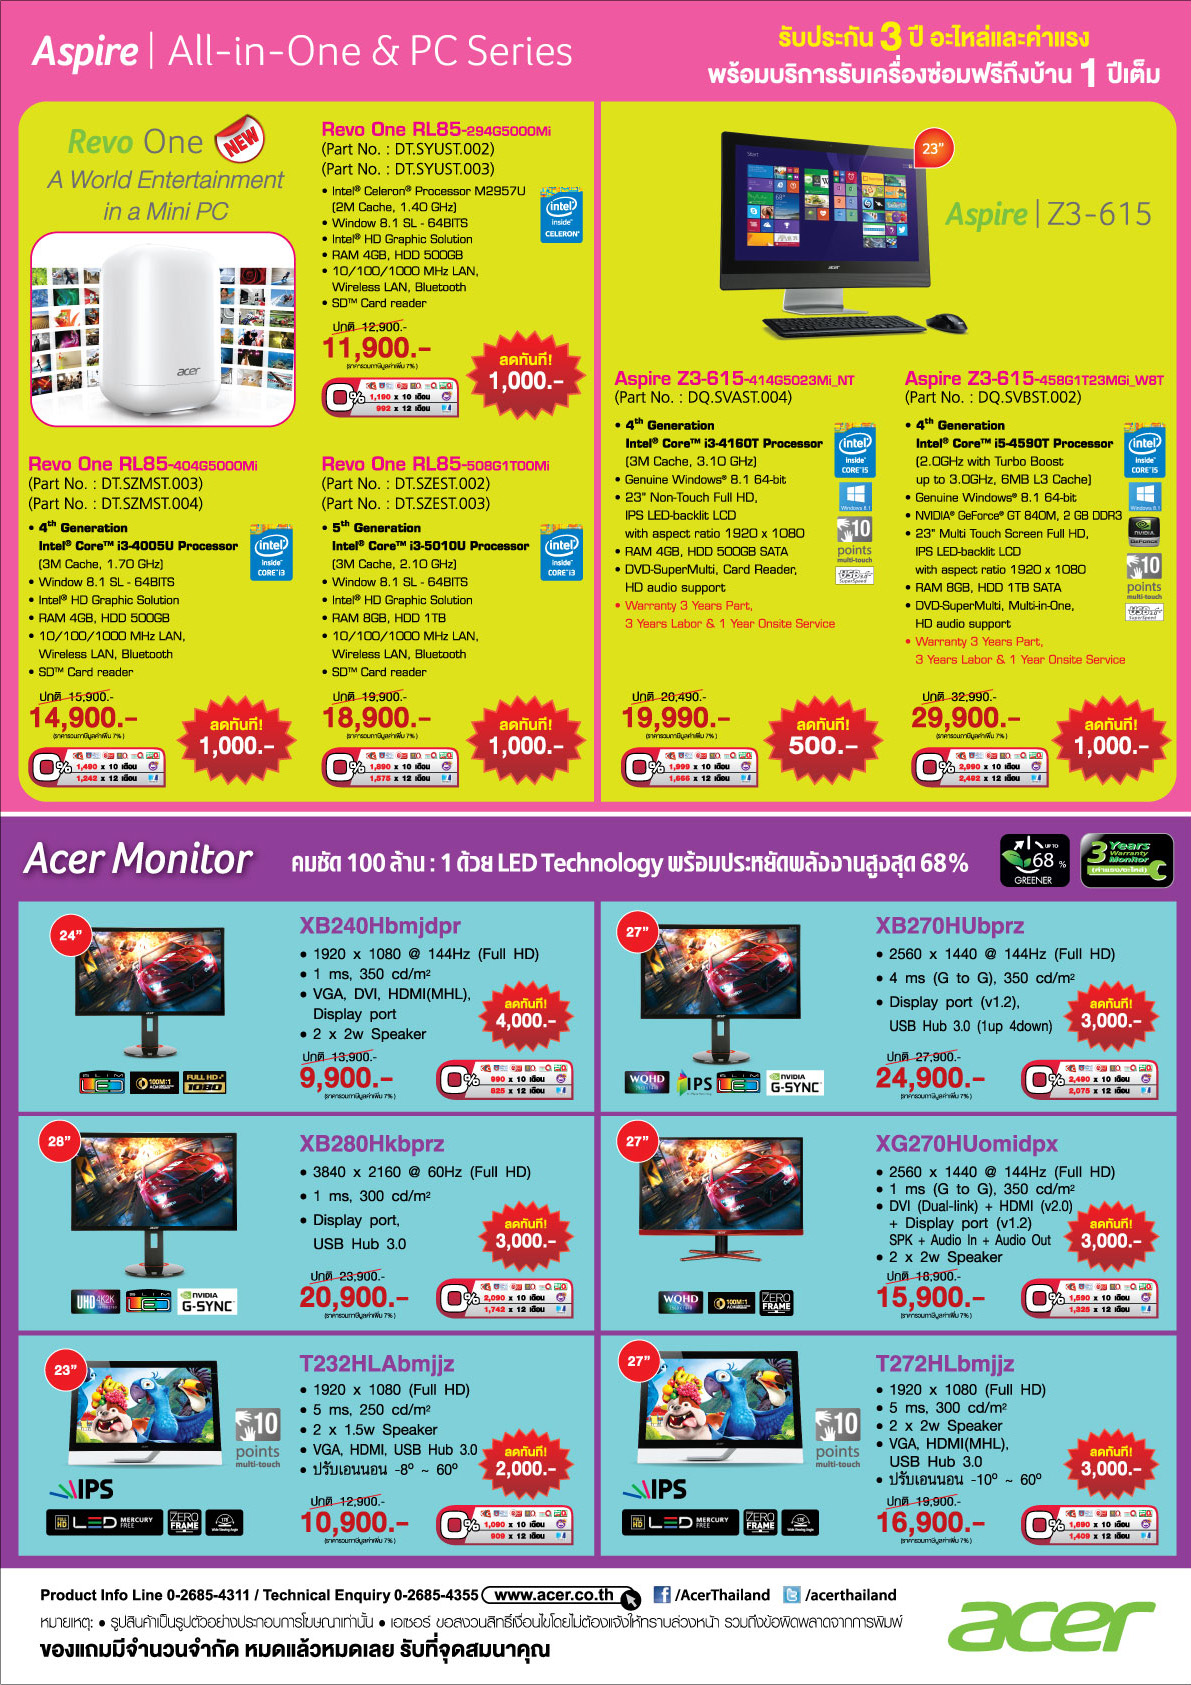 Commart-June-2015#6-2